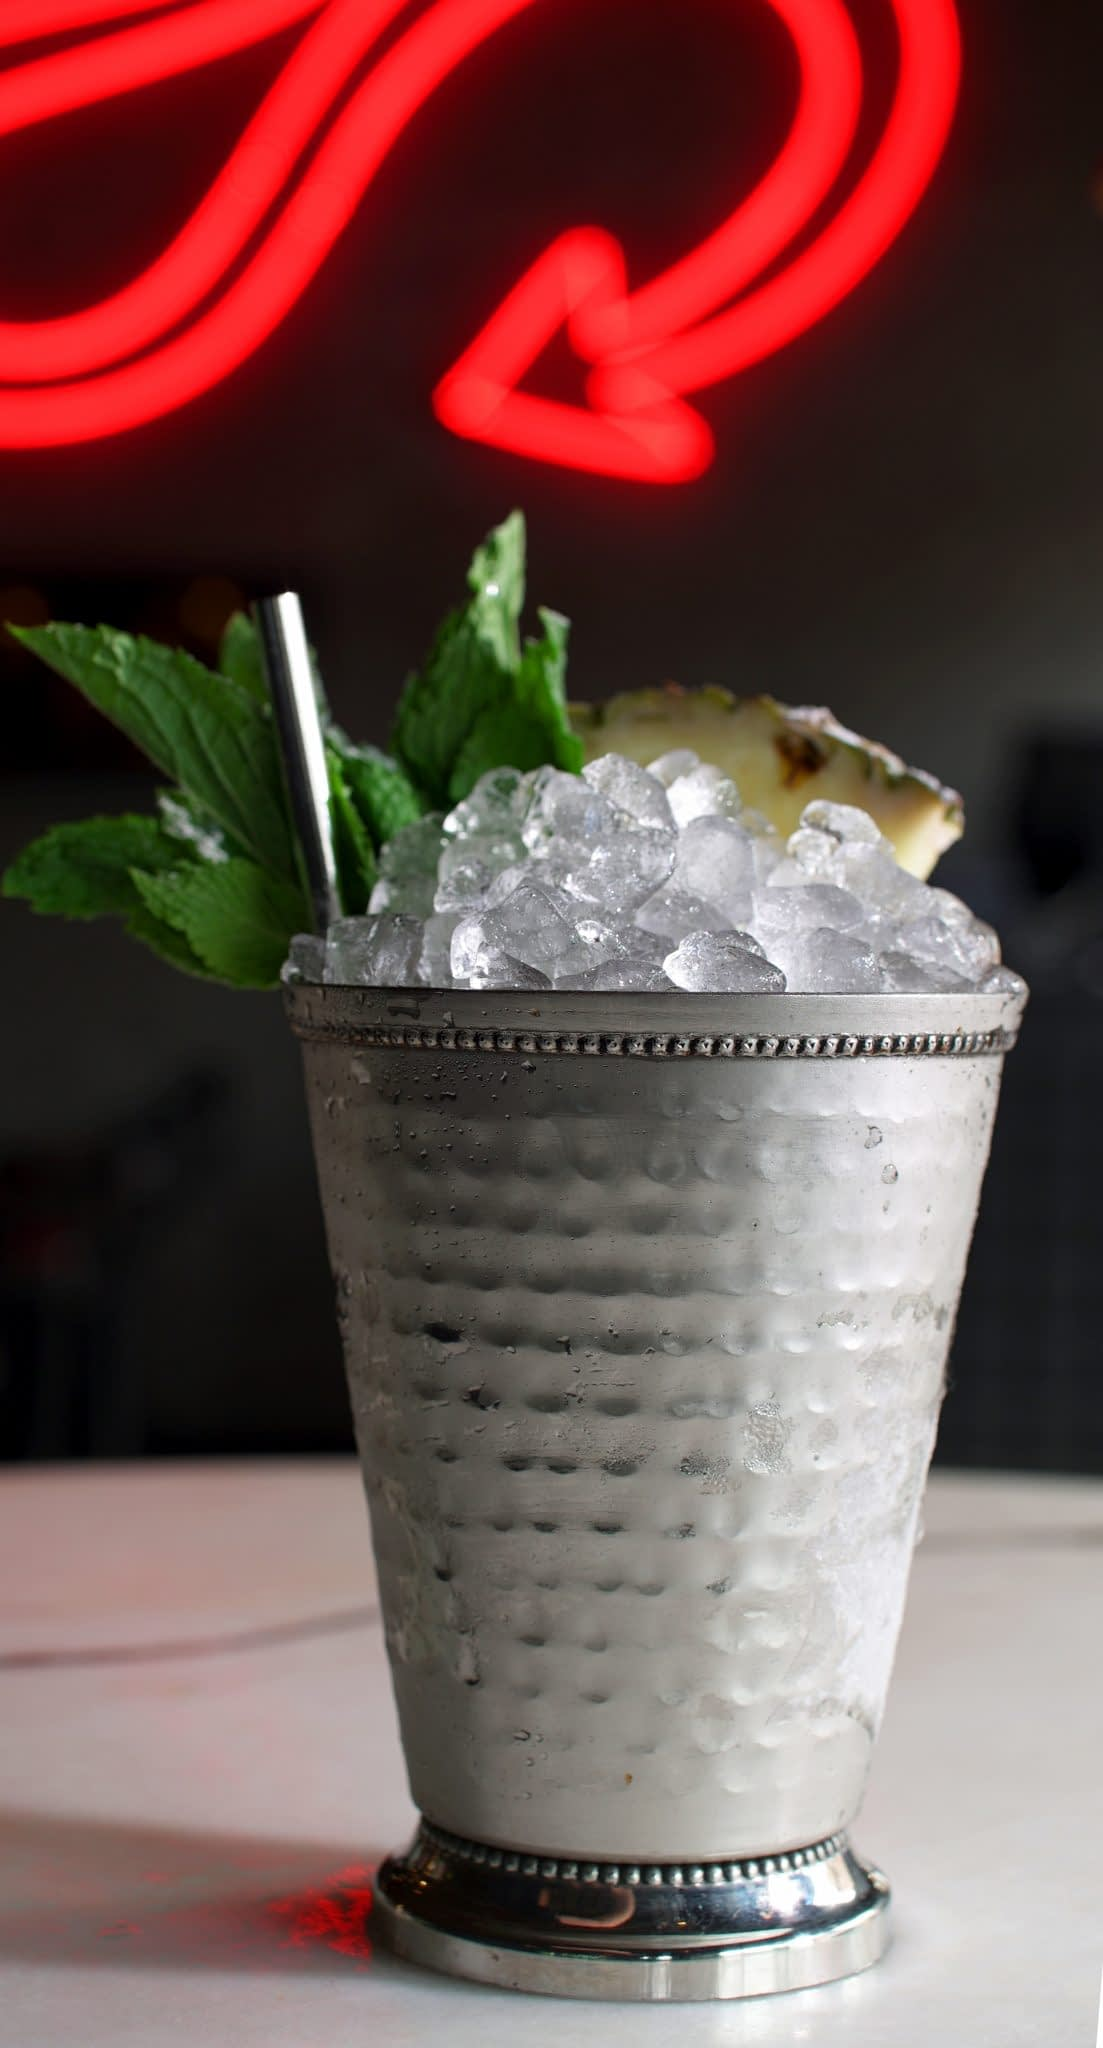 A julep-style cocktail served in a silver julep cup is filled with pebble ice and garnished with a mint sprig, pineapple wedge, and metal straw and then dusted with powdered sugar. The cocktail sits on a marble table with a neon devil's tail out of focus in the background.